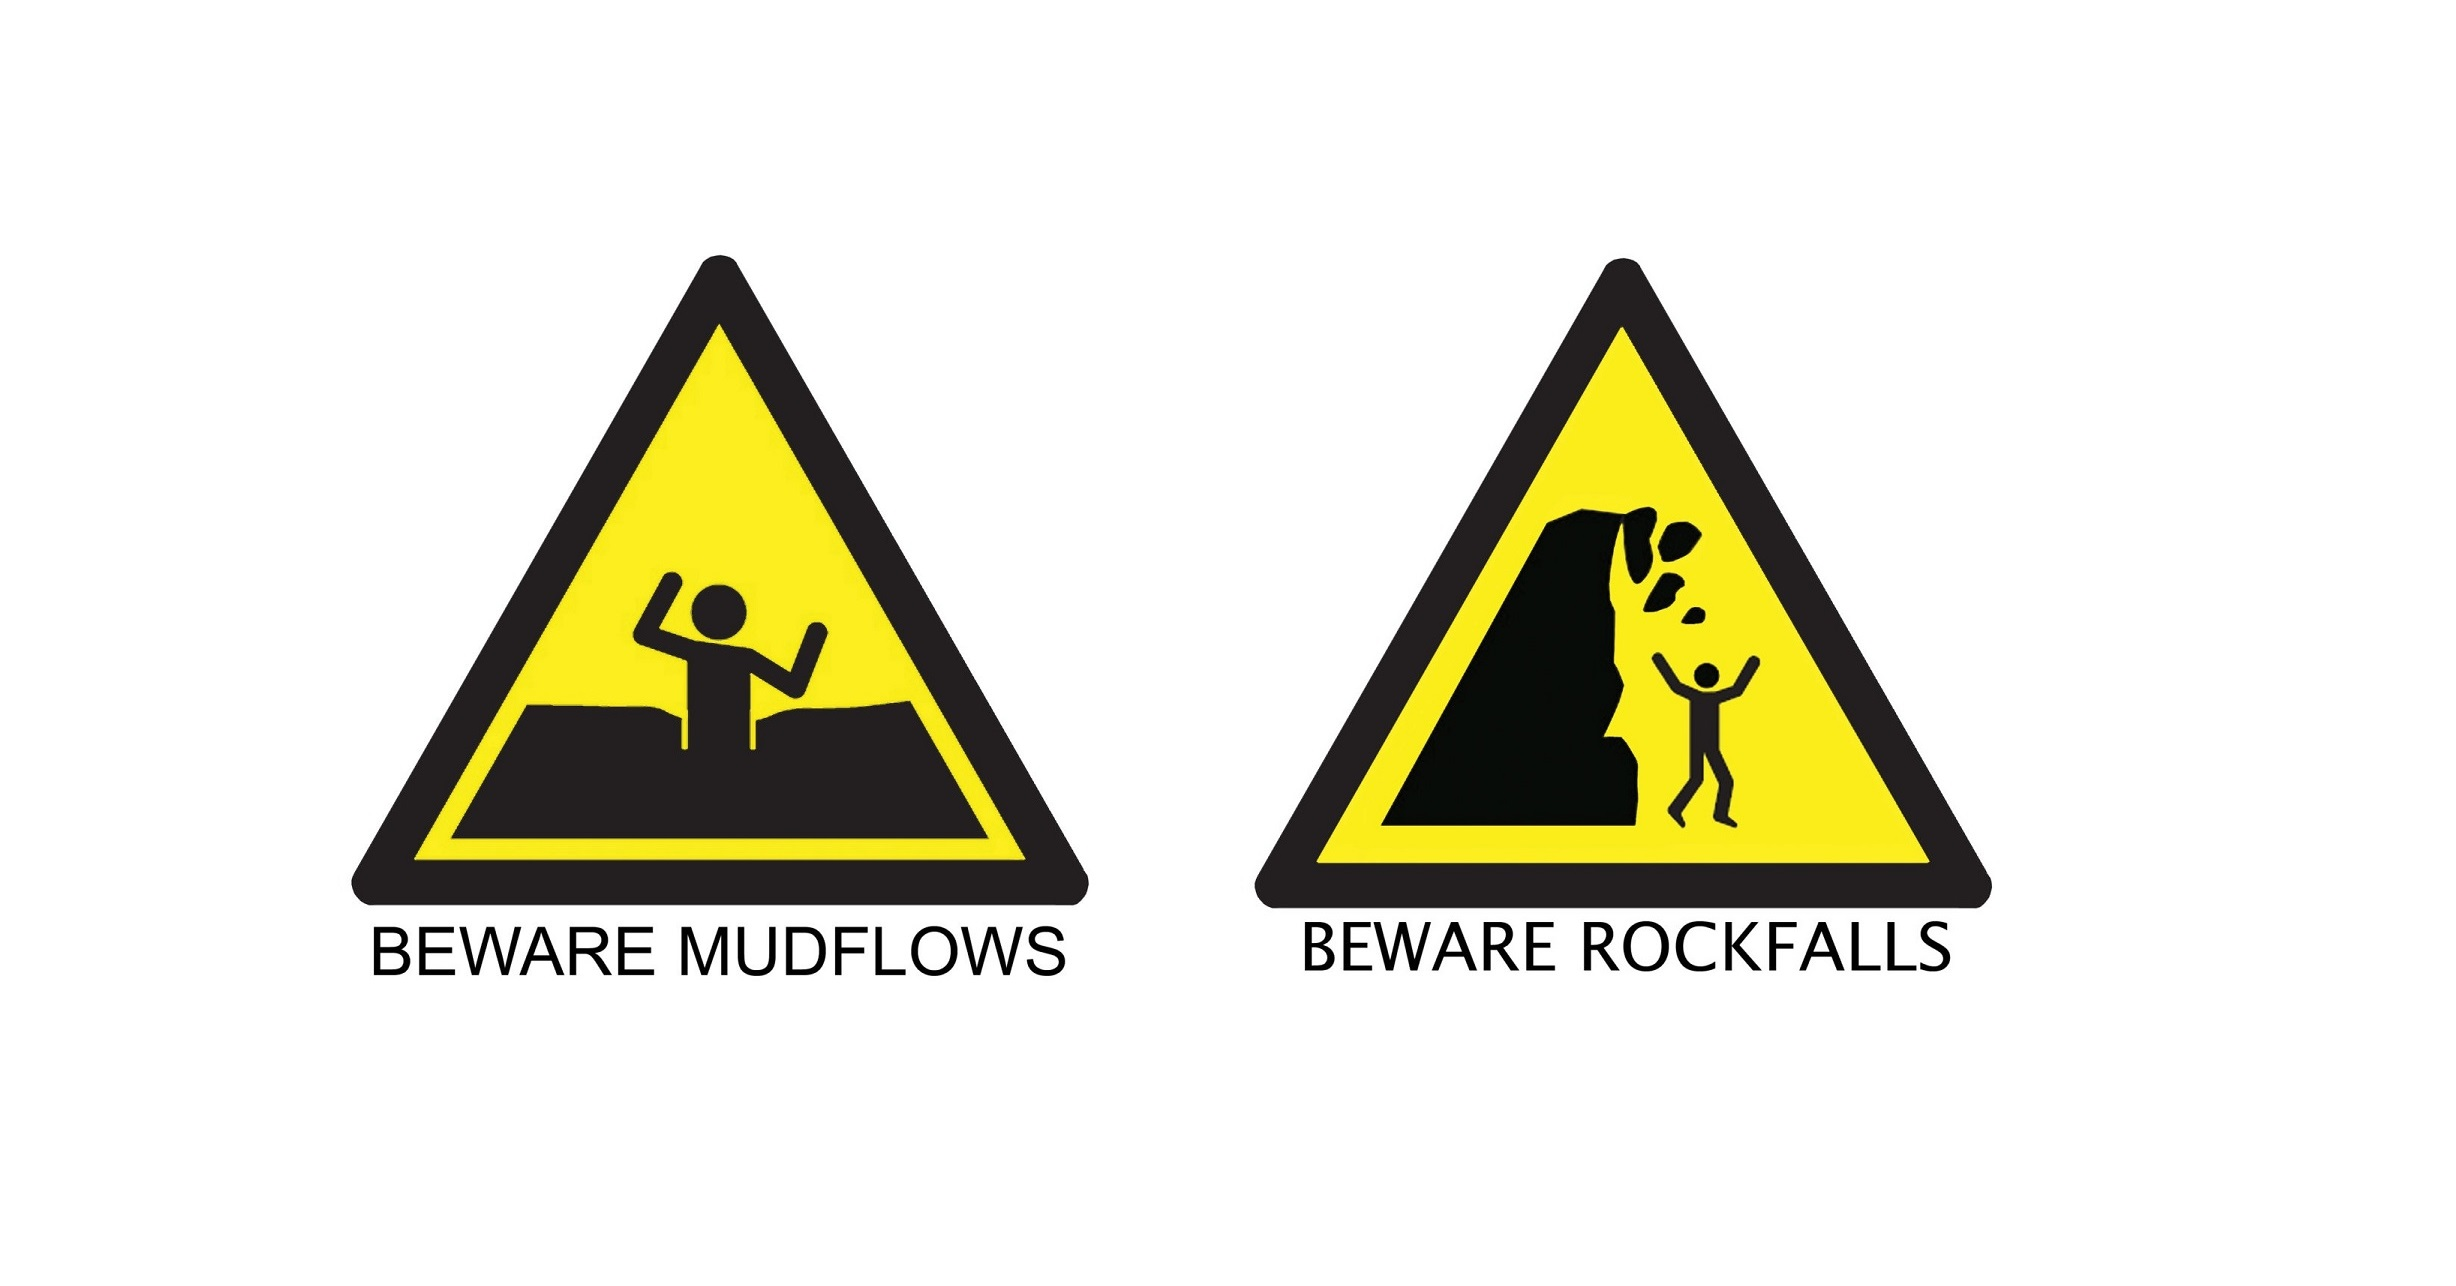 safety signs composite - small